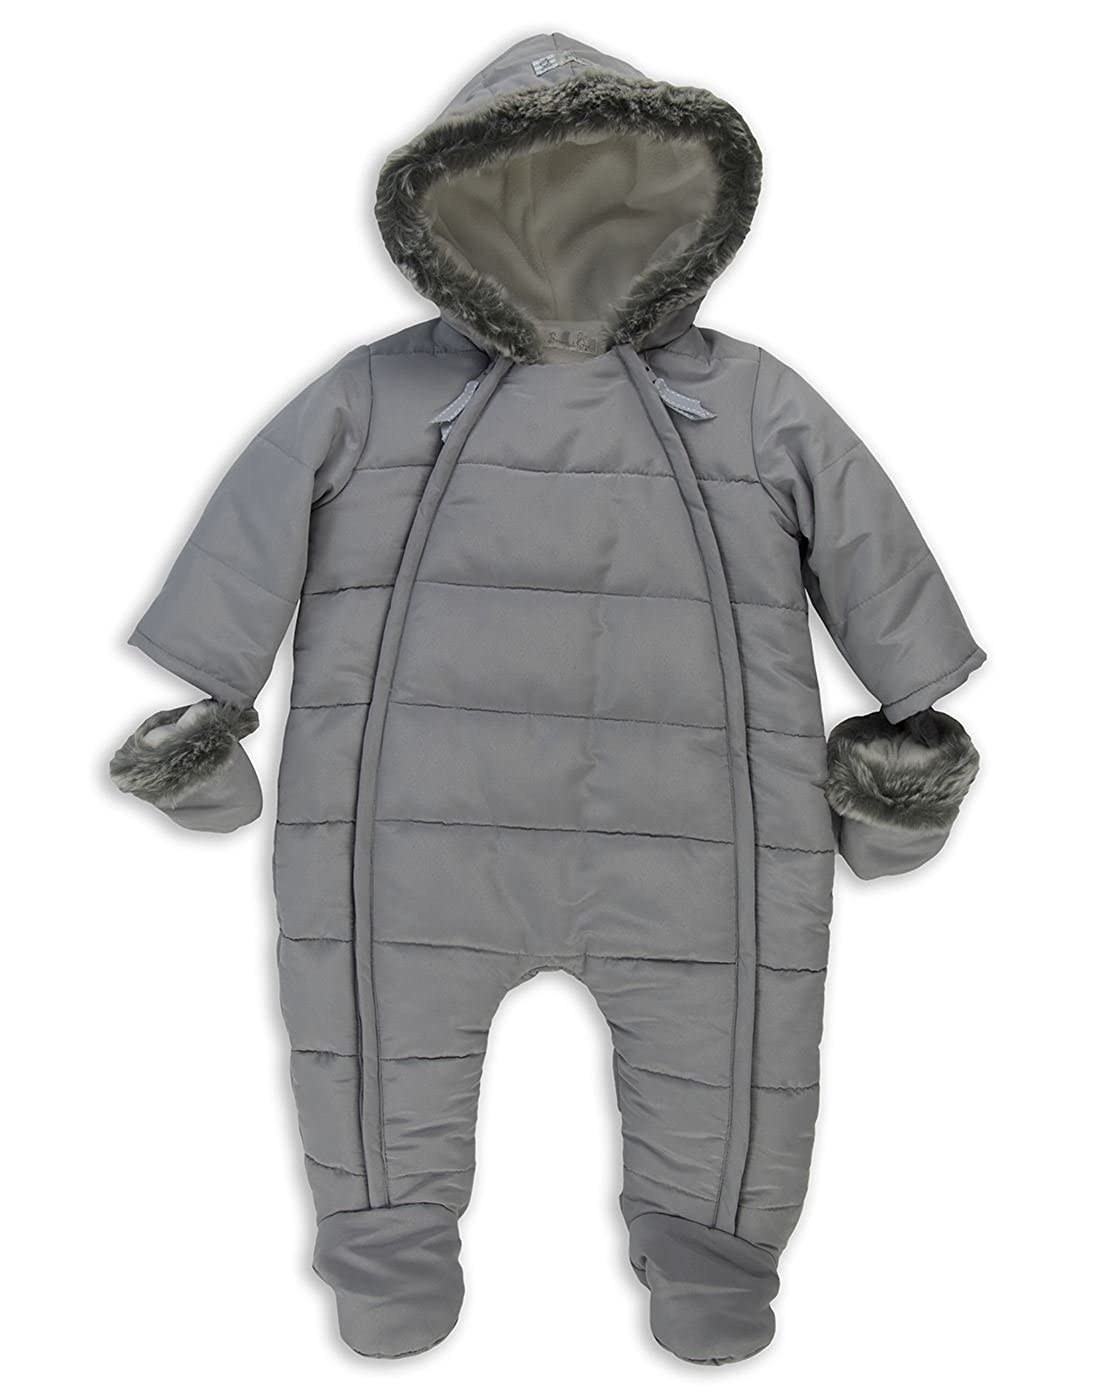 1d6f1d4a0 The Essential One - Baby Unisex Fur Trimmed Snowsuit Pramsuit ...